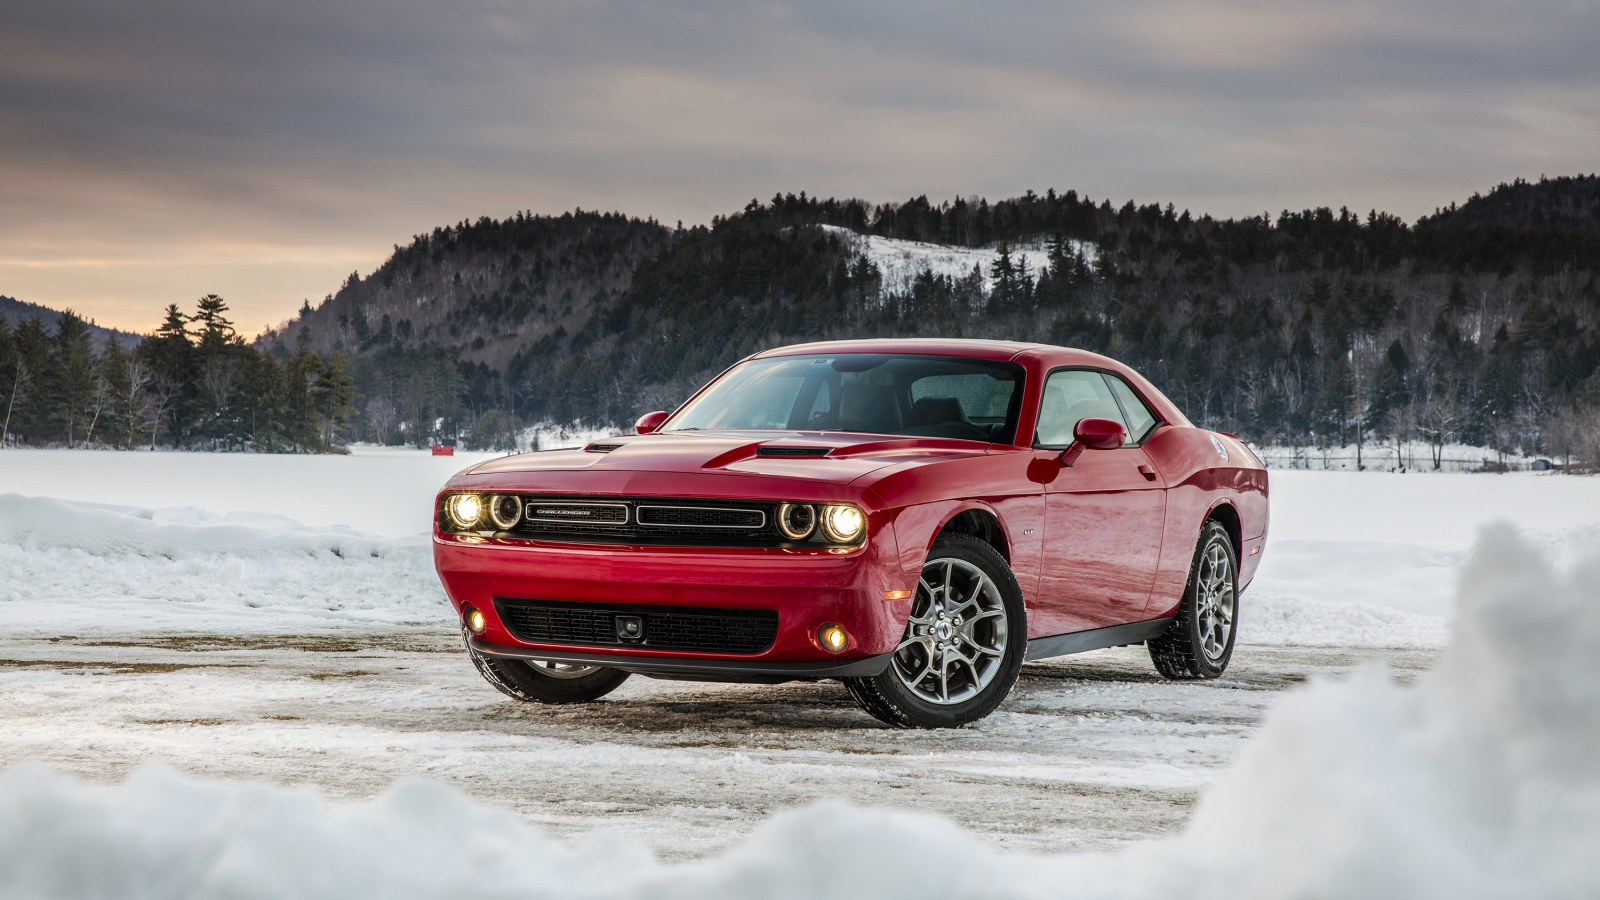 Dodge challenger, red muscle car, 1600x900 wallpaper